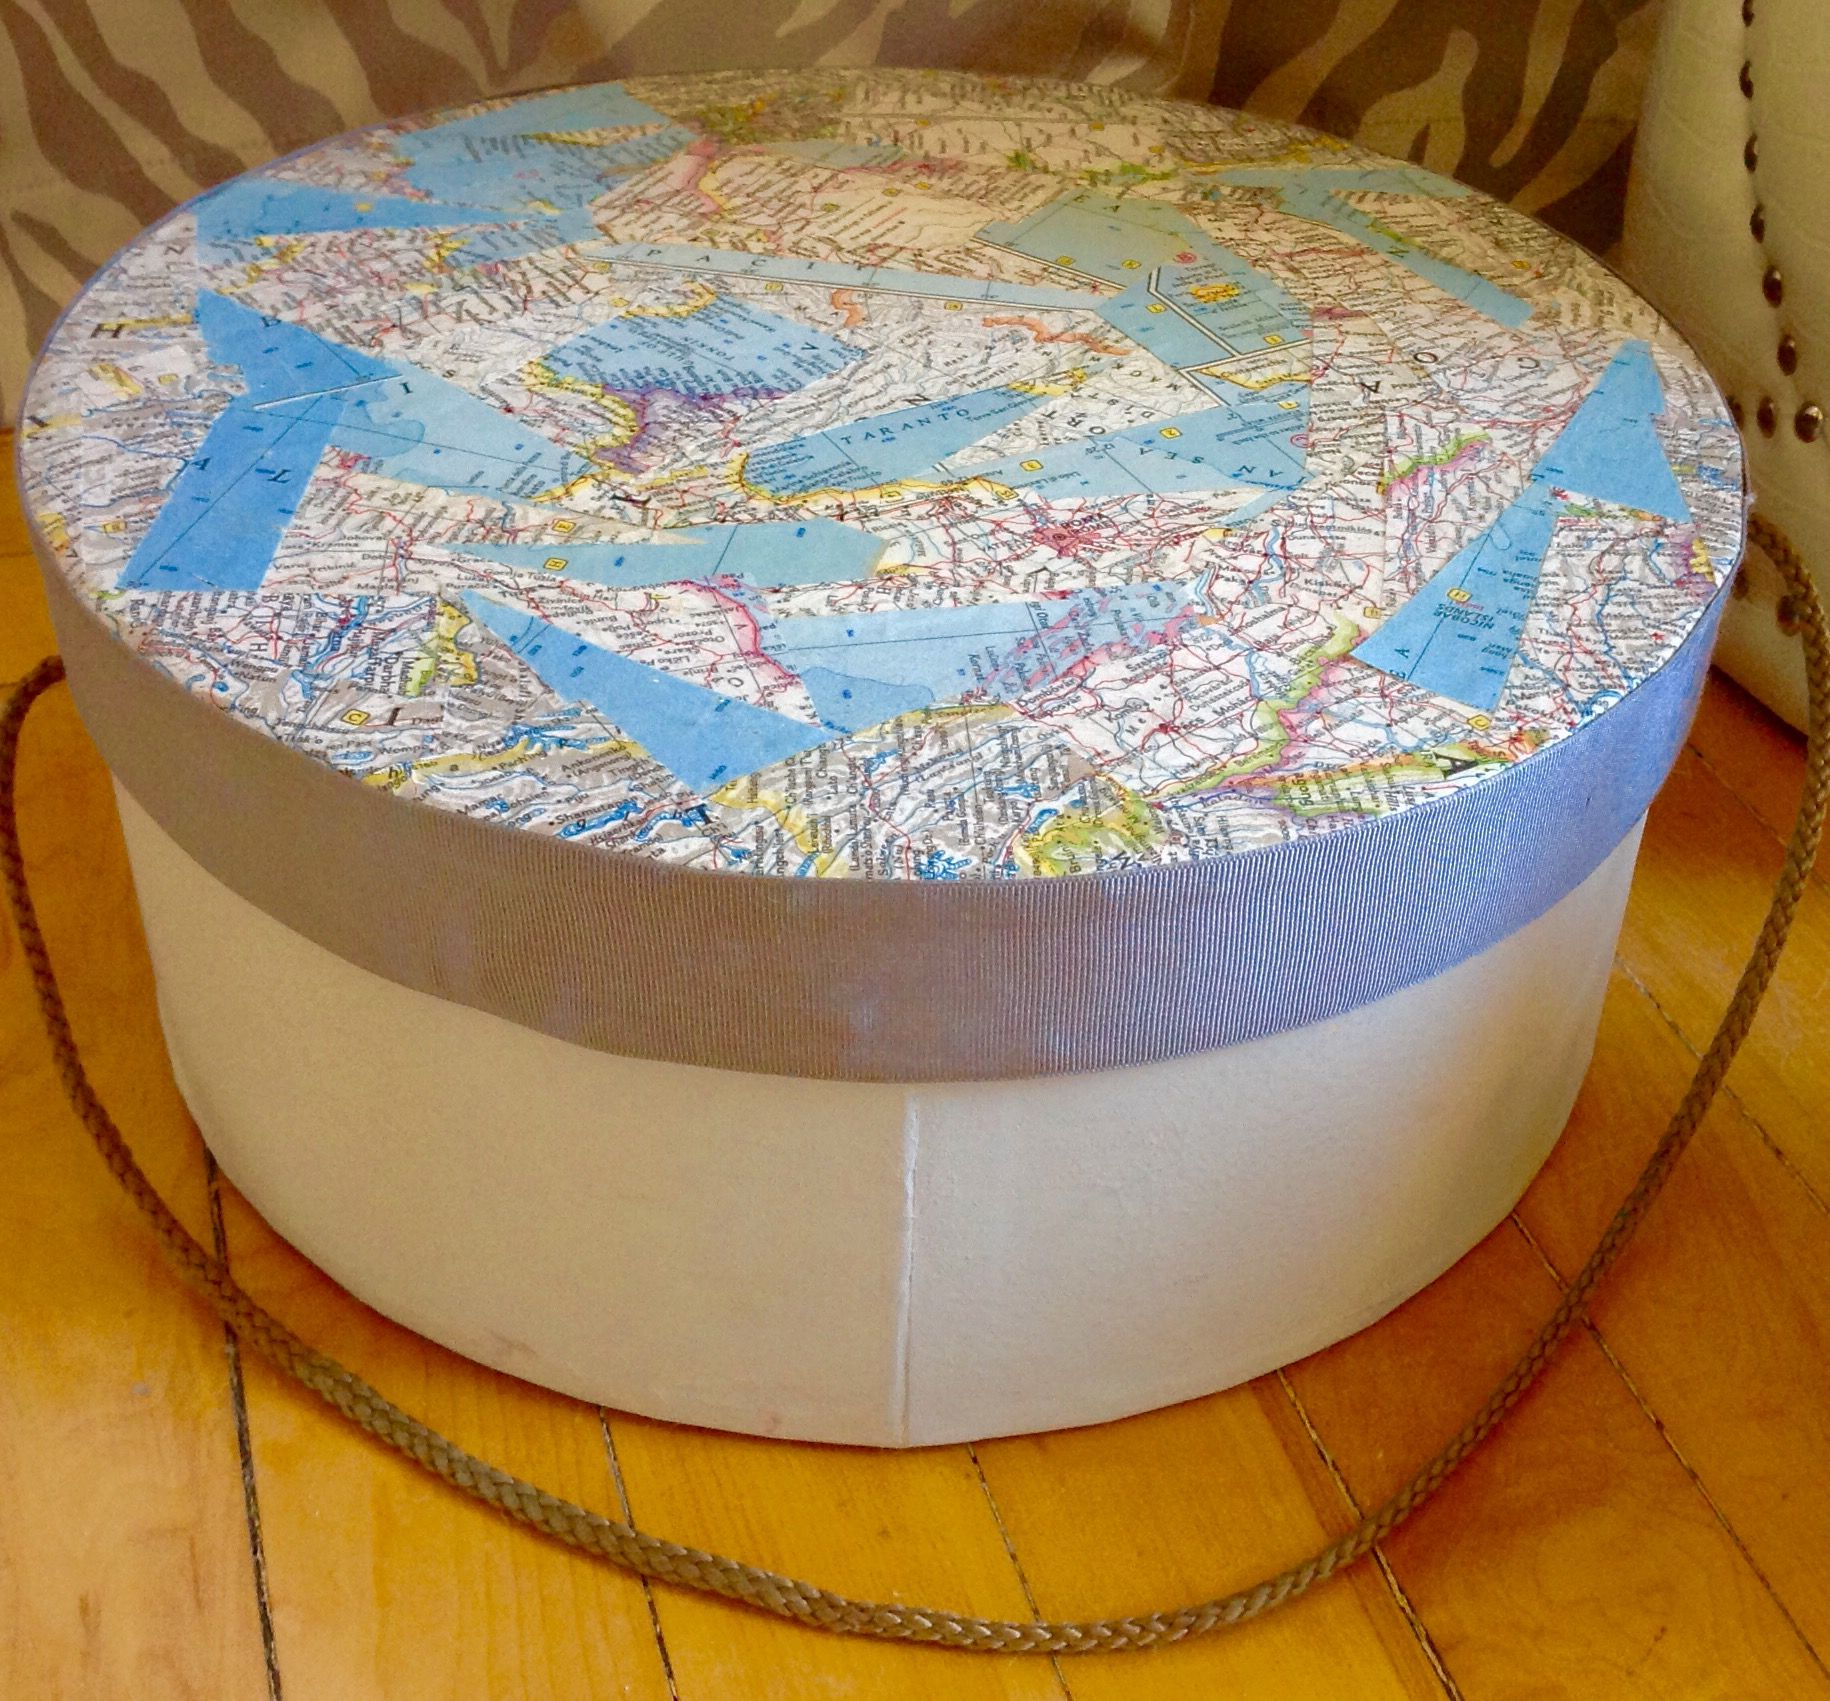 I had some nat geo map scraps leftover and an ugly 80's cardboard storage box. Painted the bottom with leftover wall paint from the room it lives in, mod pod he the scraps to the top and used the gray grosgrain from Target quilt packaging to cover the top side.